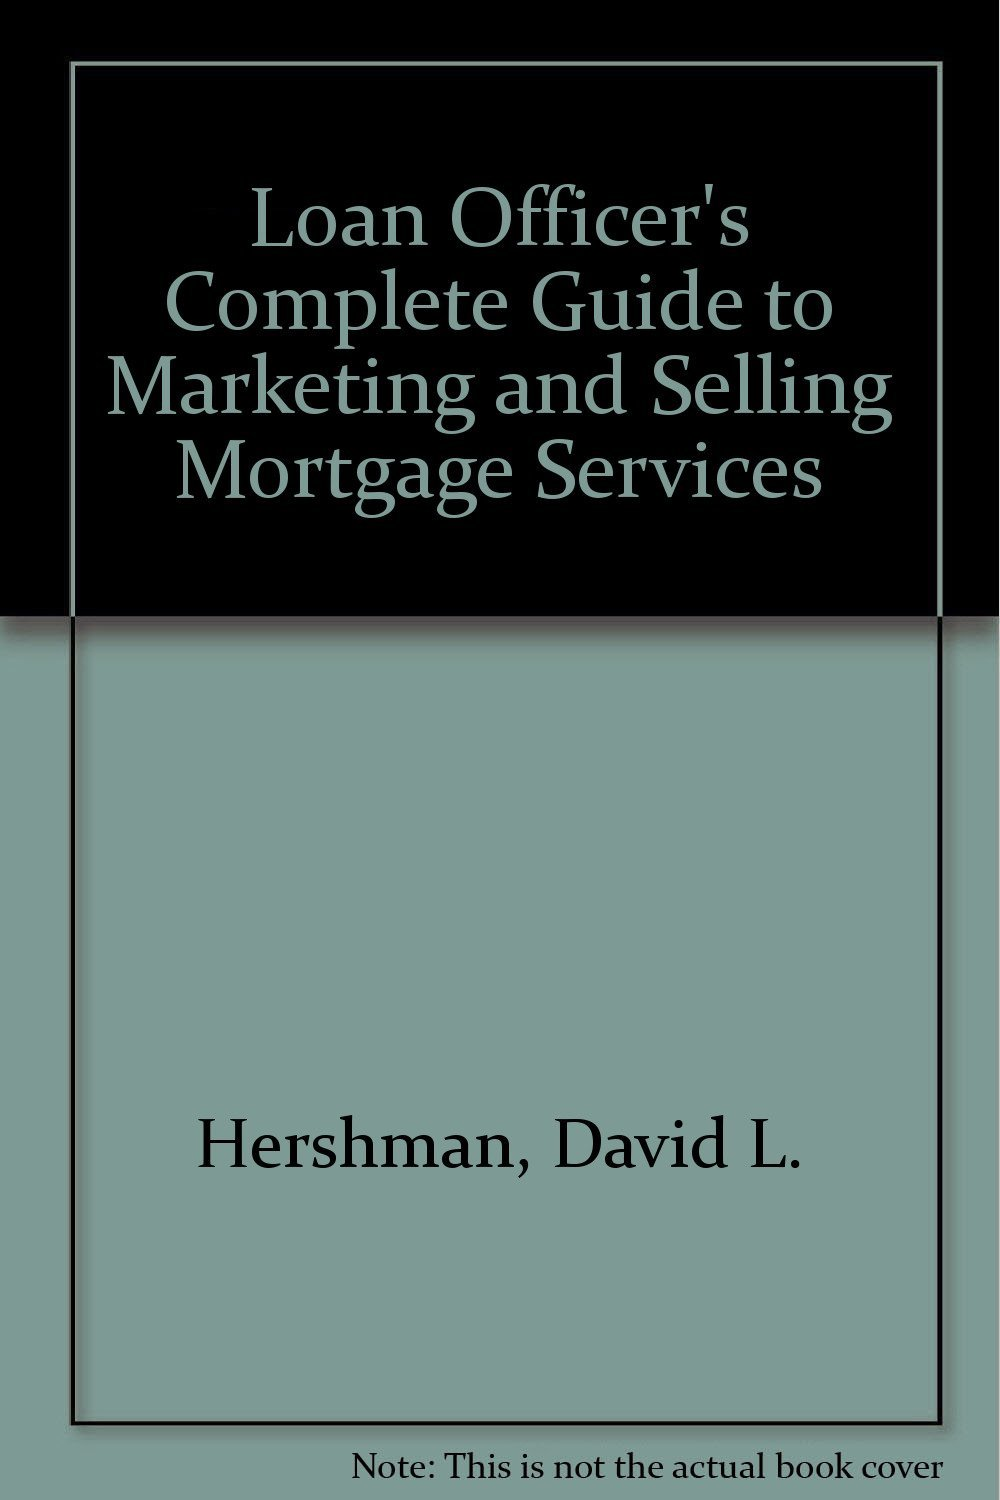 Loan Officer's Complete Guide to Marketing & Selling Mortgage Services:  David L. Hershman, Robert Linthicum: 9781557381415: Amazon.com: Books